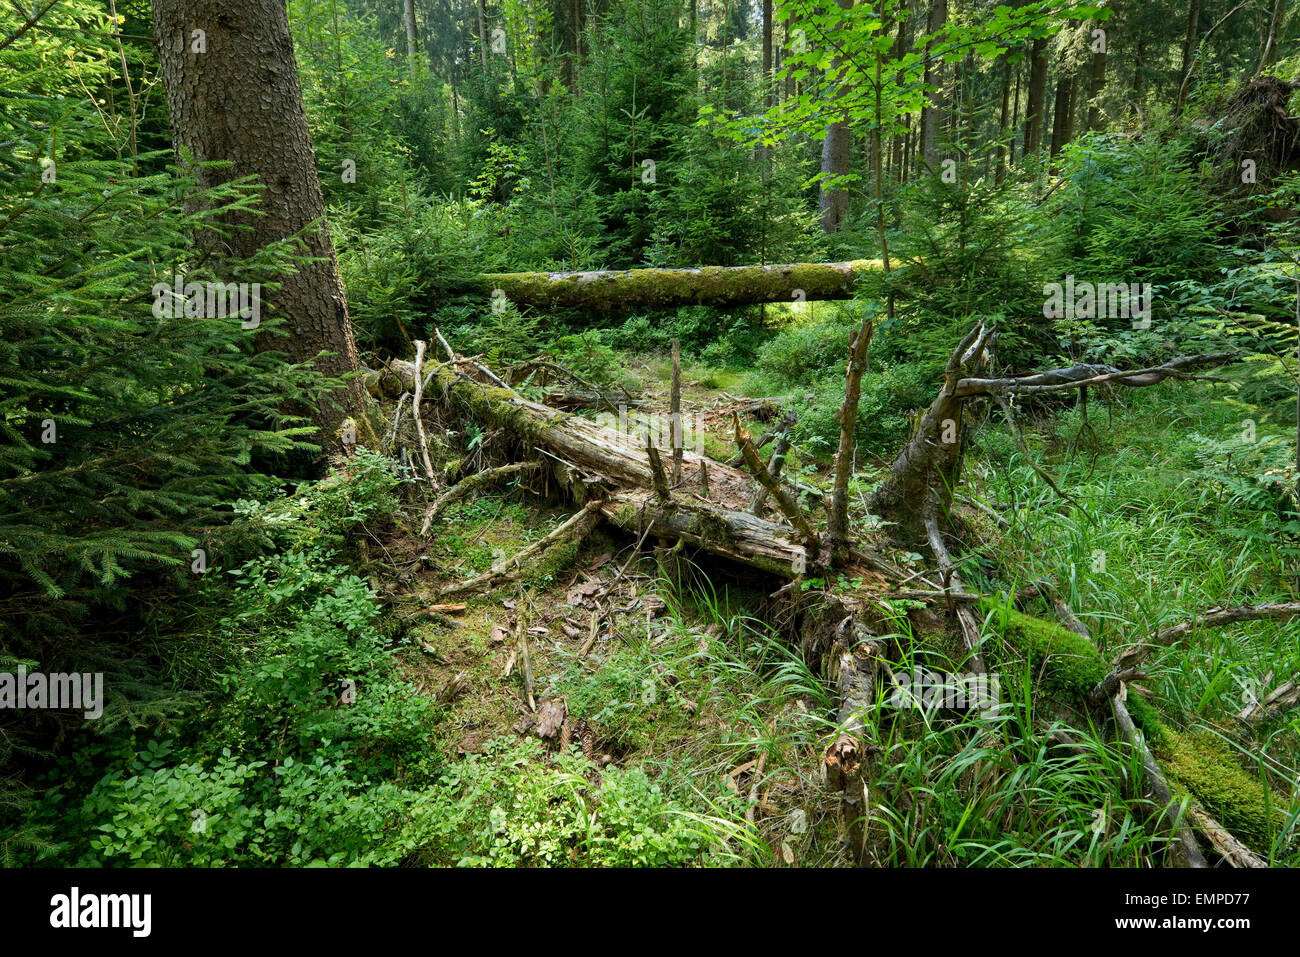 Dead wood in primeval spruce forest, Norway spruce (Picea abies), Harz National Park, Lower Saxony, Germany - Stock Image